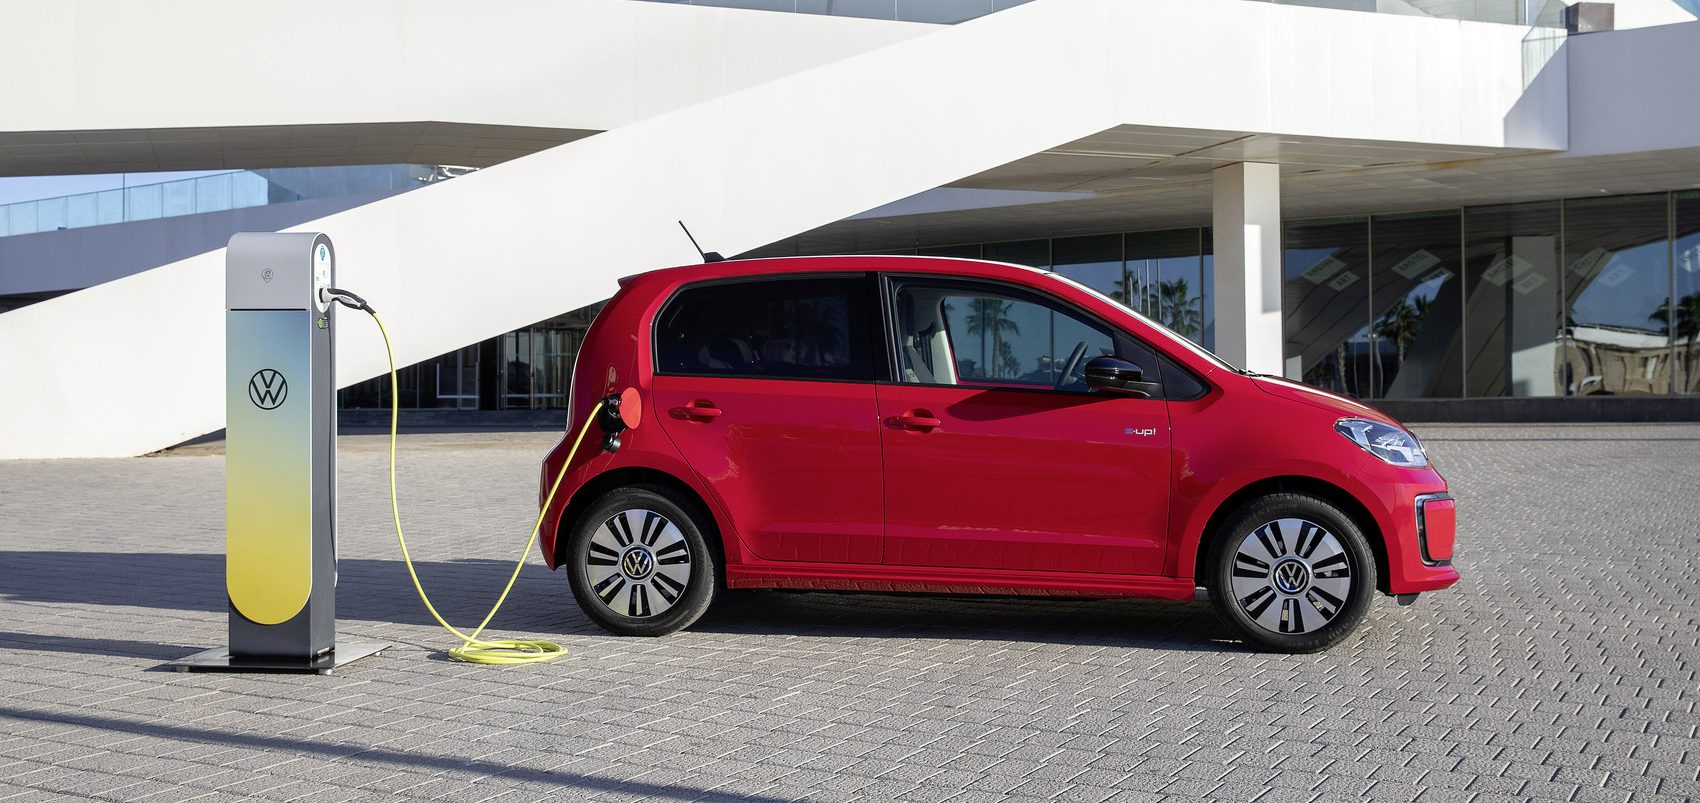 Volkswagen plans to launch a family of affordable electric cars under $22,000